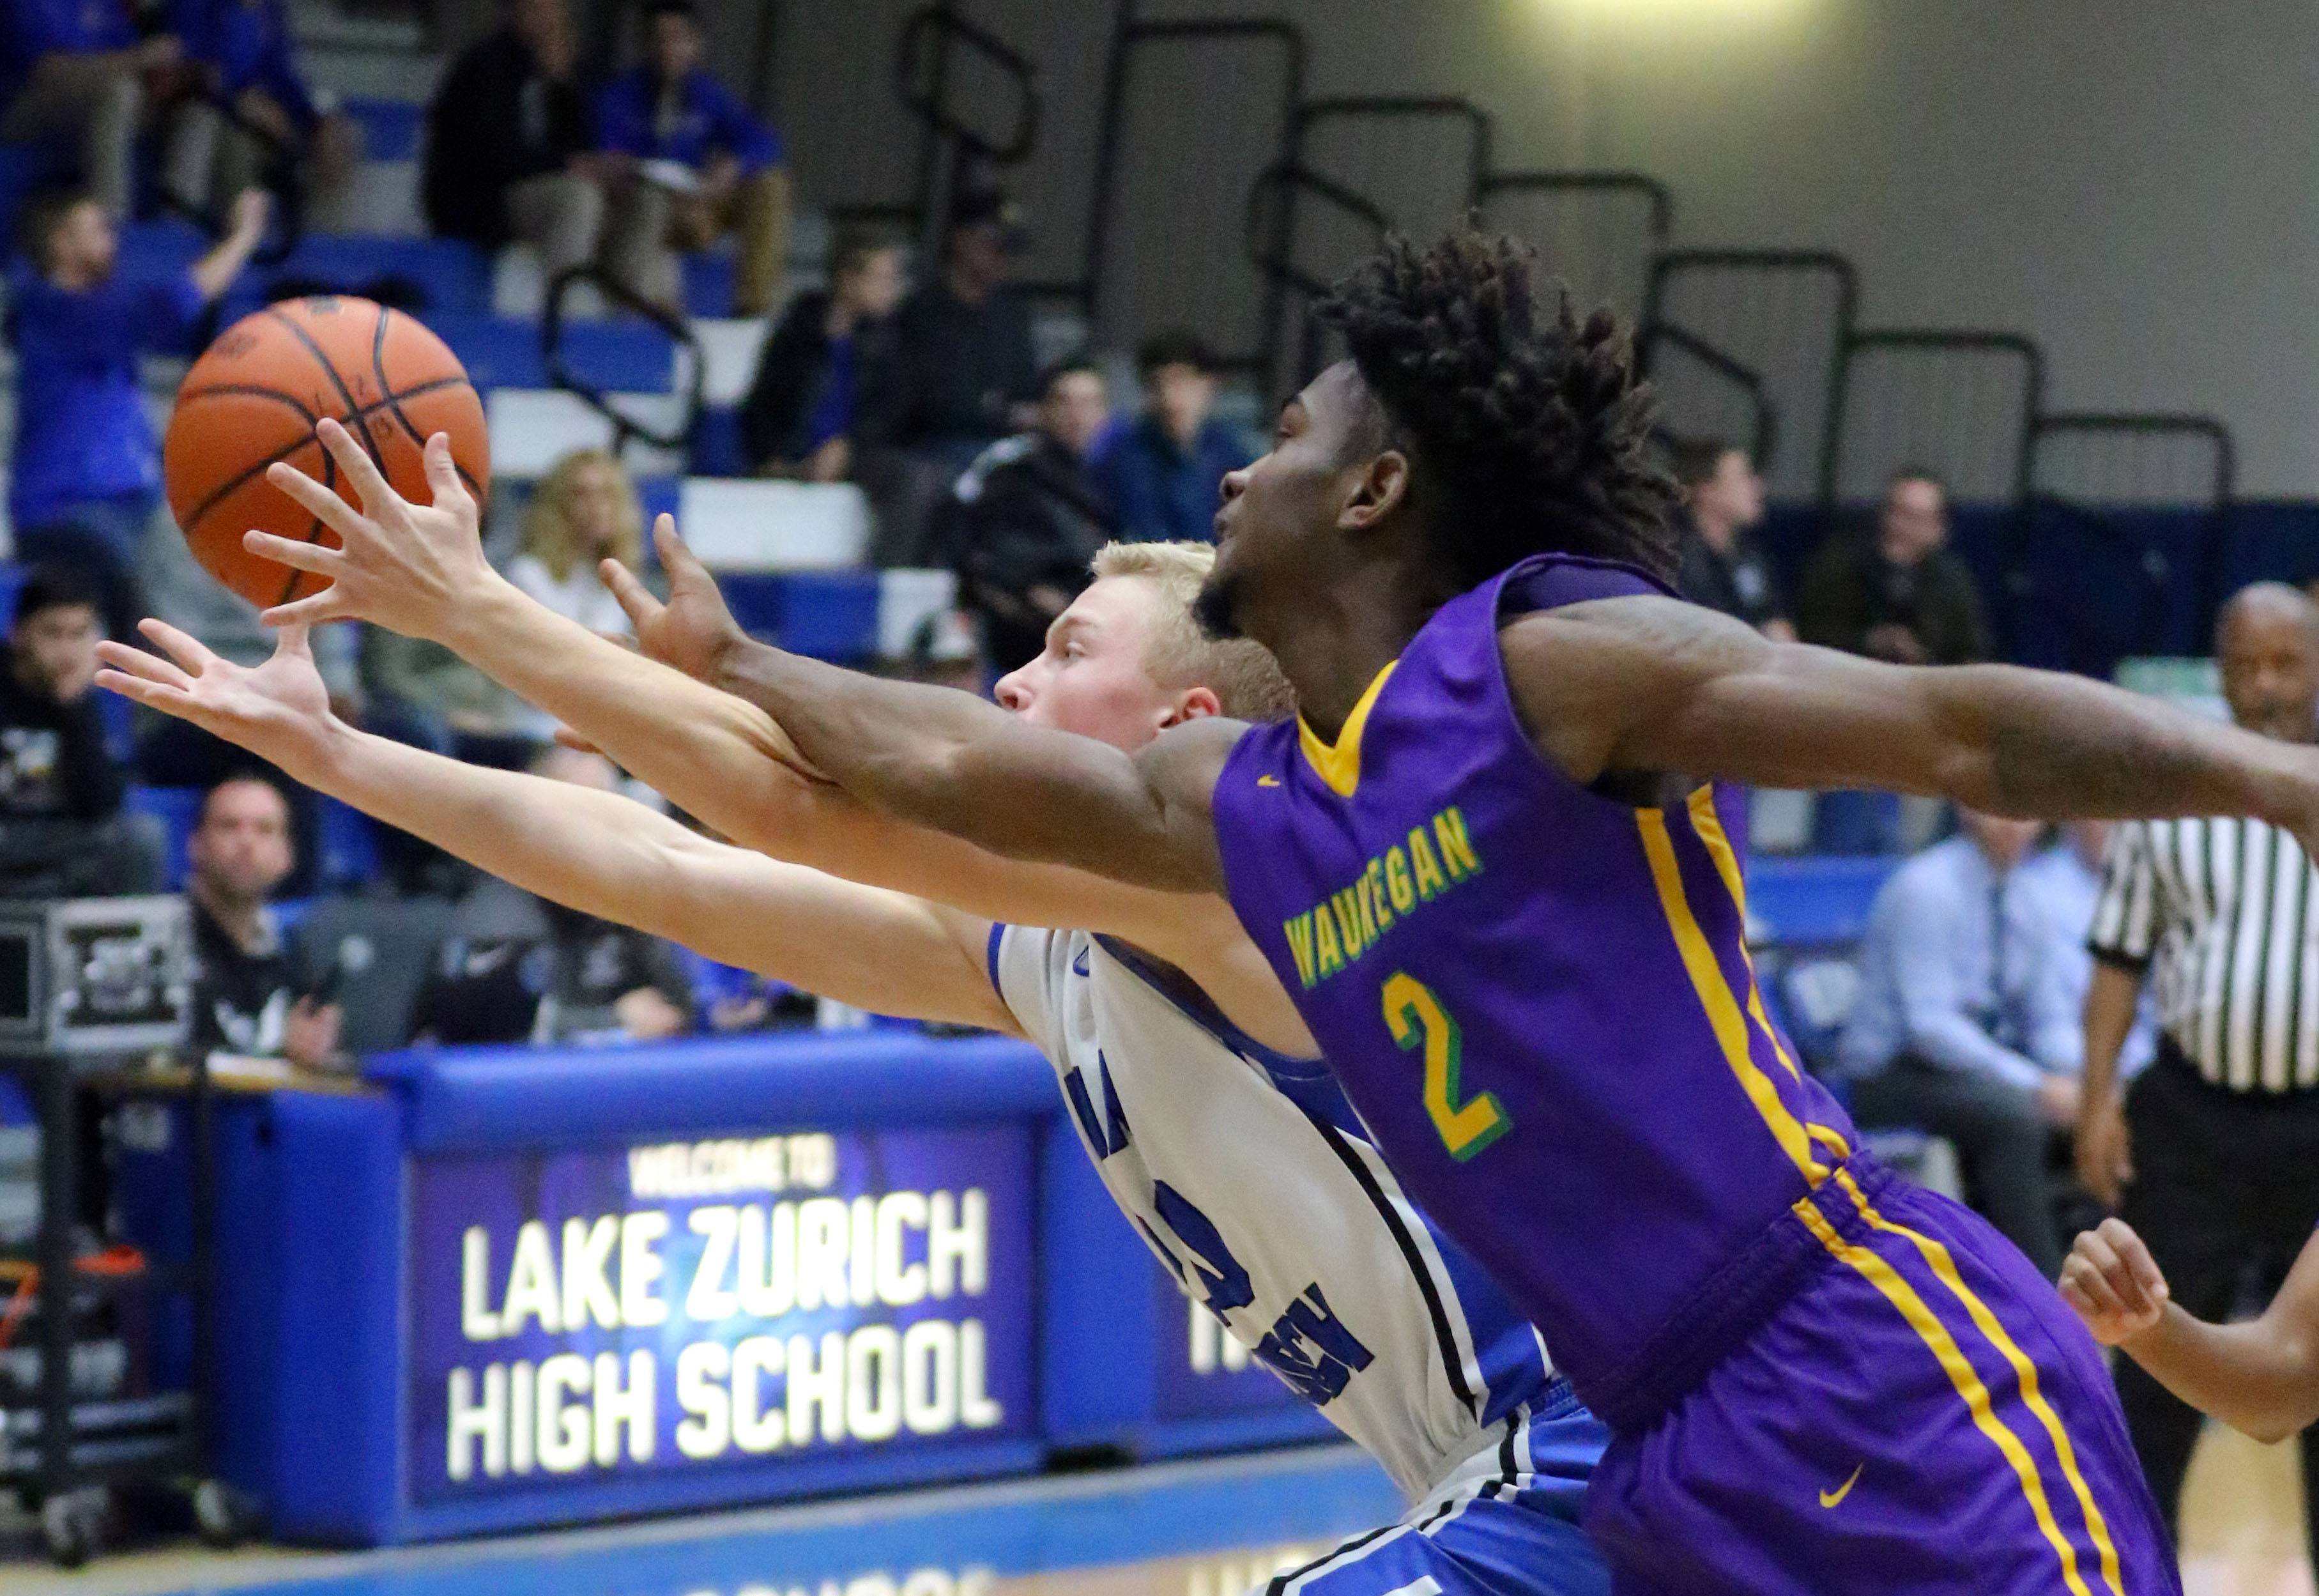 Images: Lake Zurich vs. Waukegan boys basketball